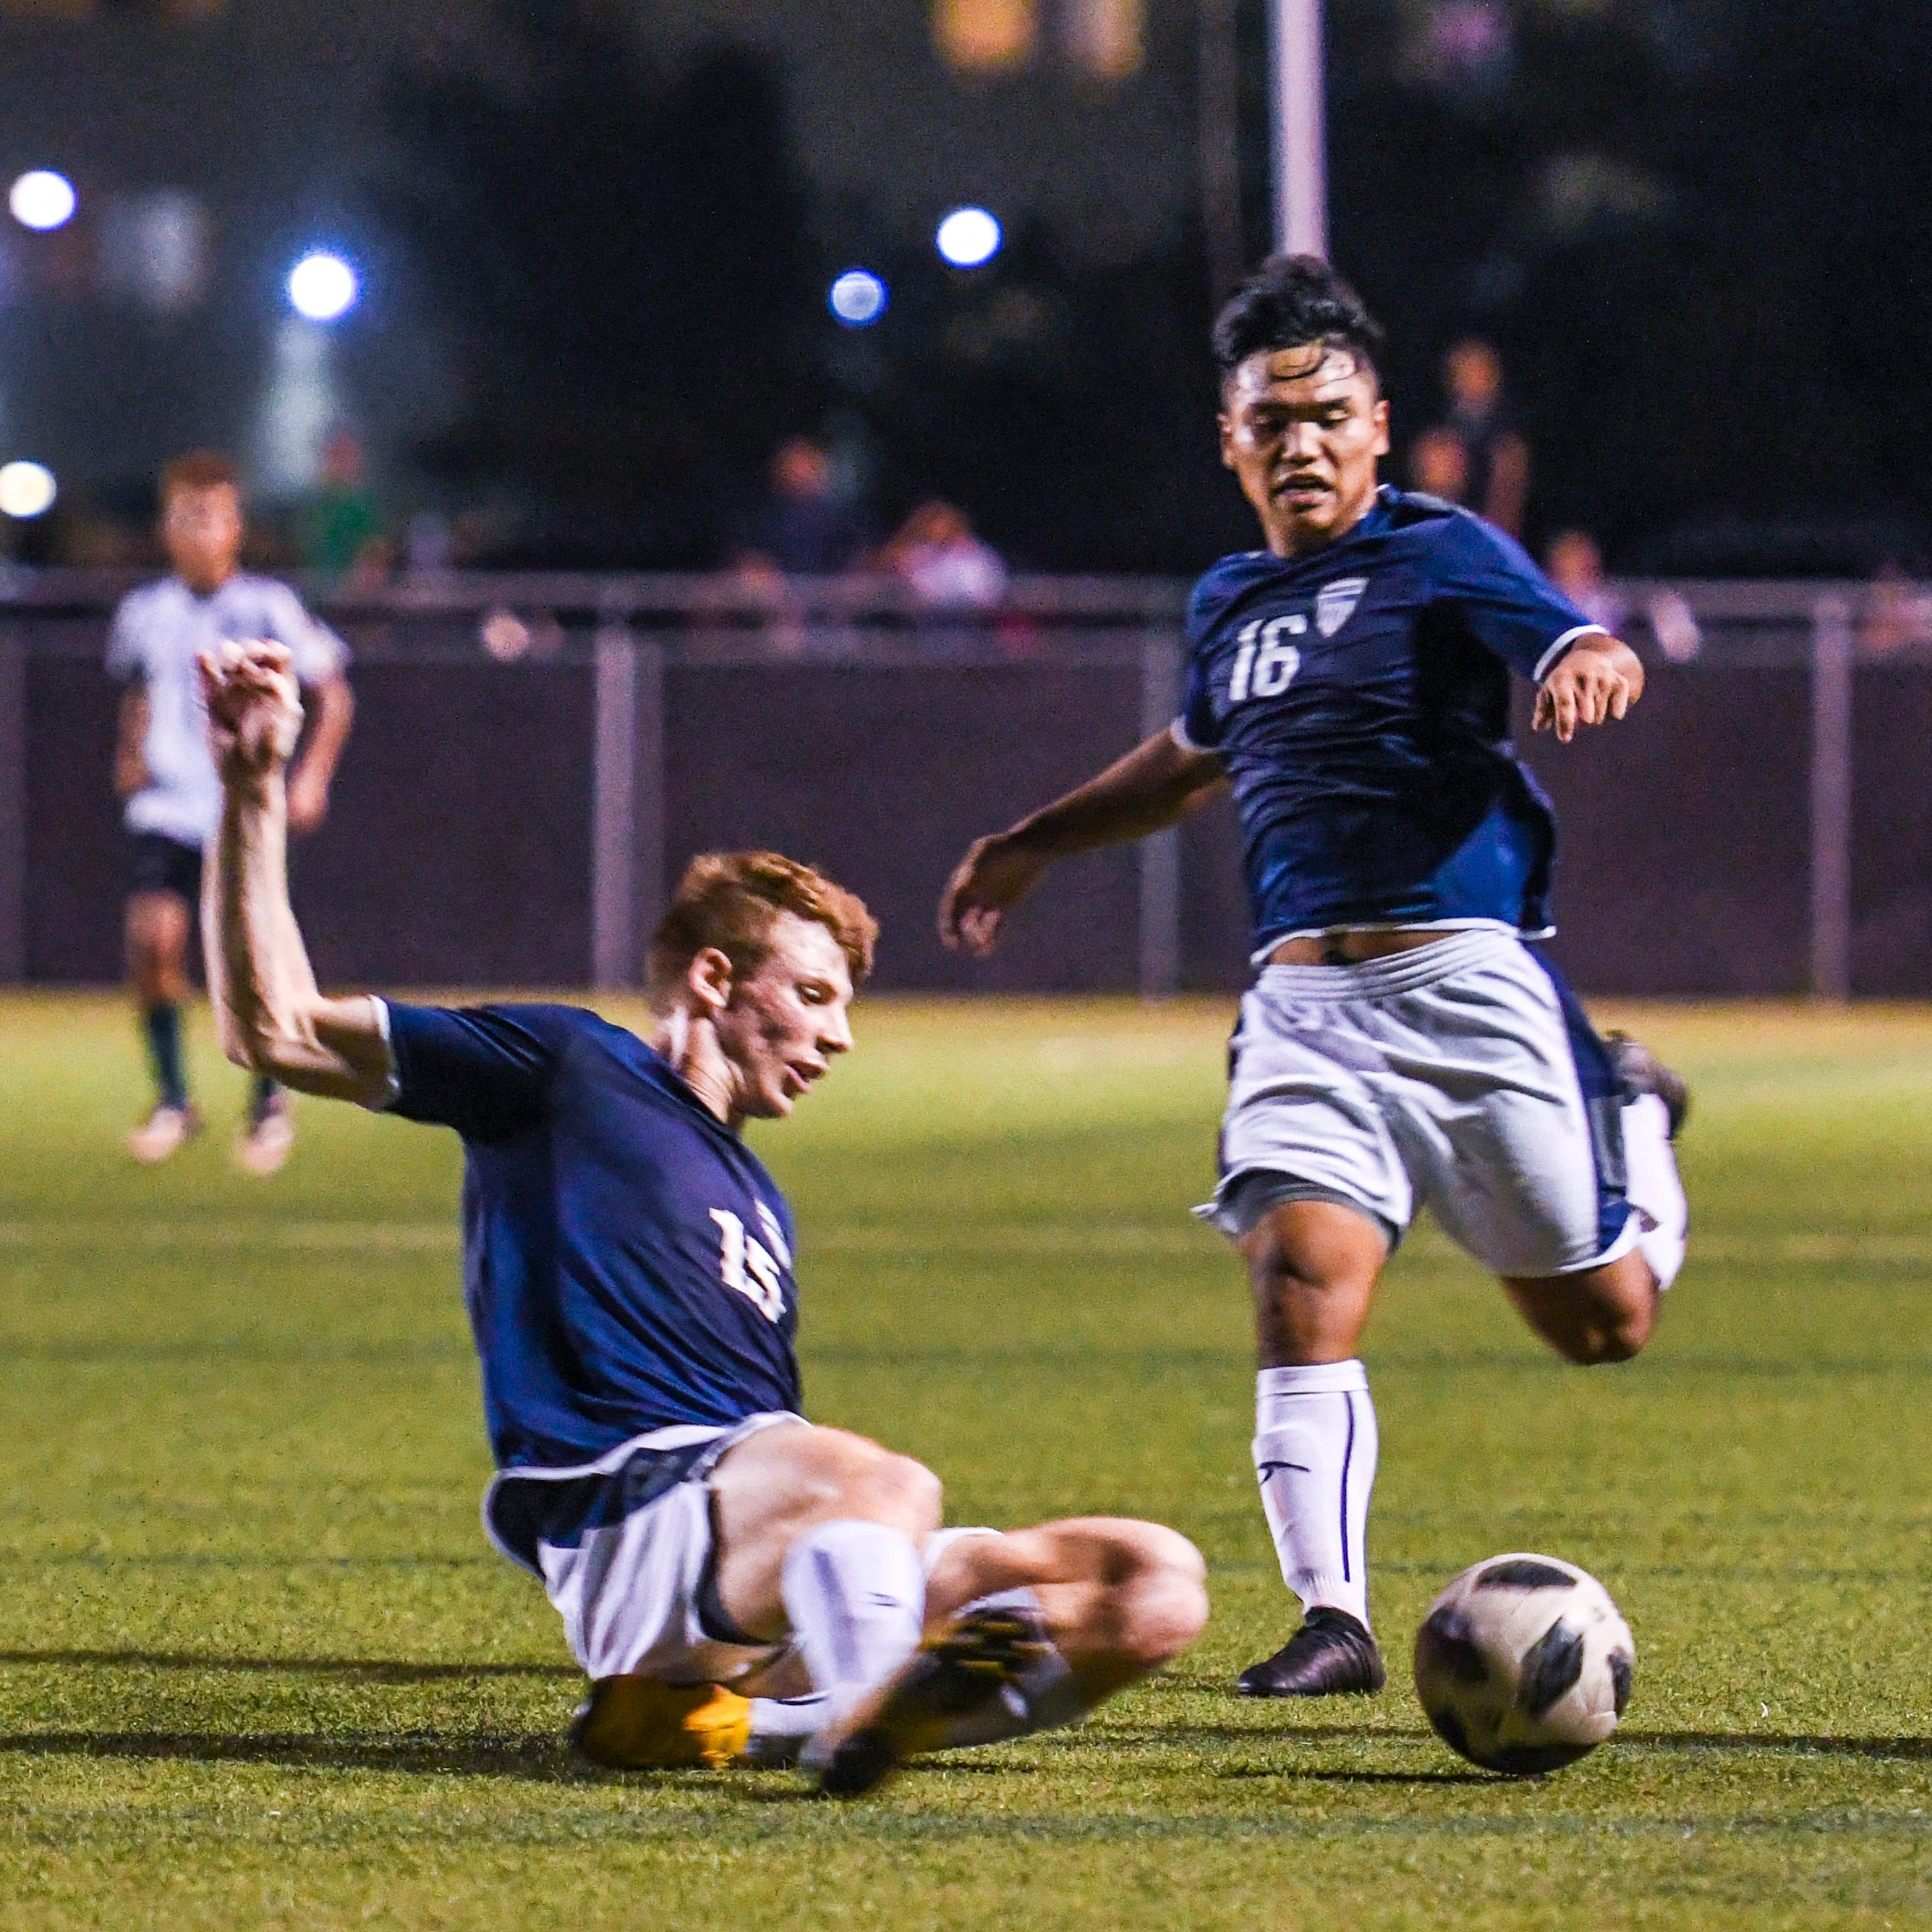 Ethan Elwell leads IIAAG All-Island soccer picks